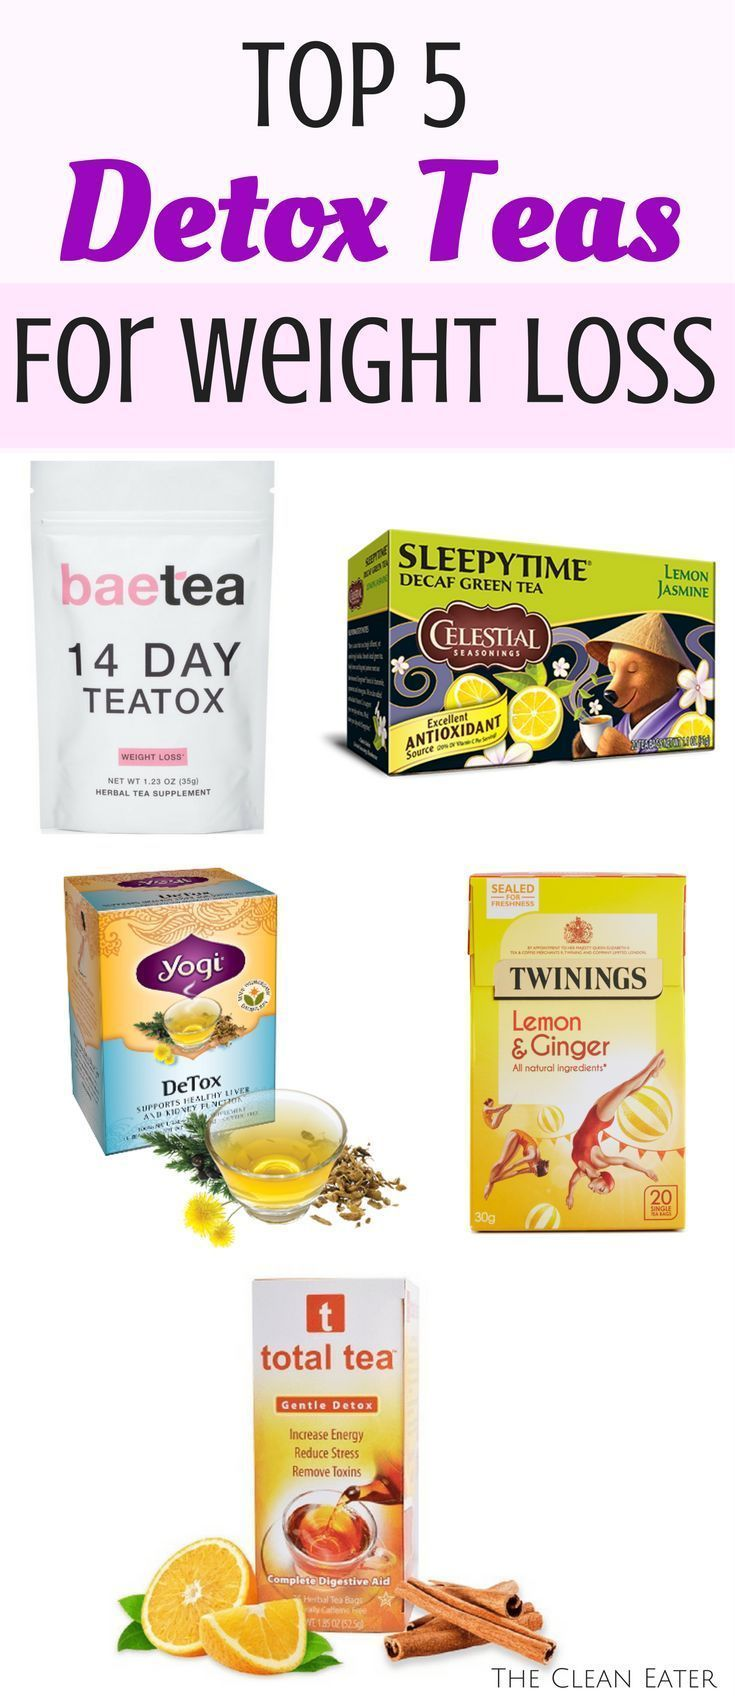 The top 5 detox teas that are affordable and great for weight loss. De-bloat and flatten your tummy with these top recommended teas! |weight loss | detox| weight loss tips|clean eater weight loss| thecleaneater.com